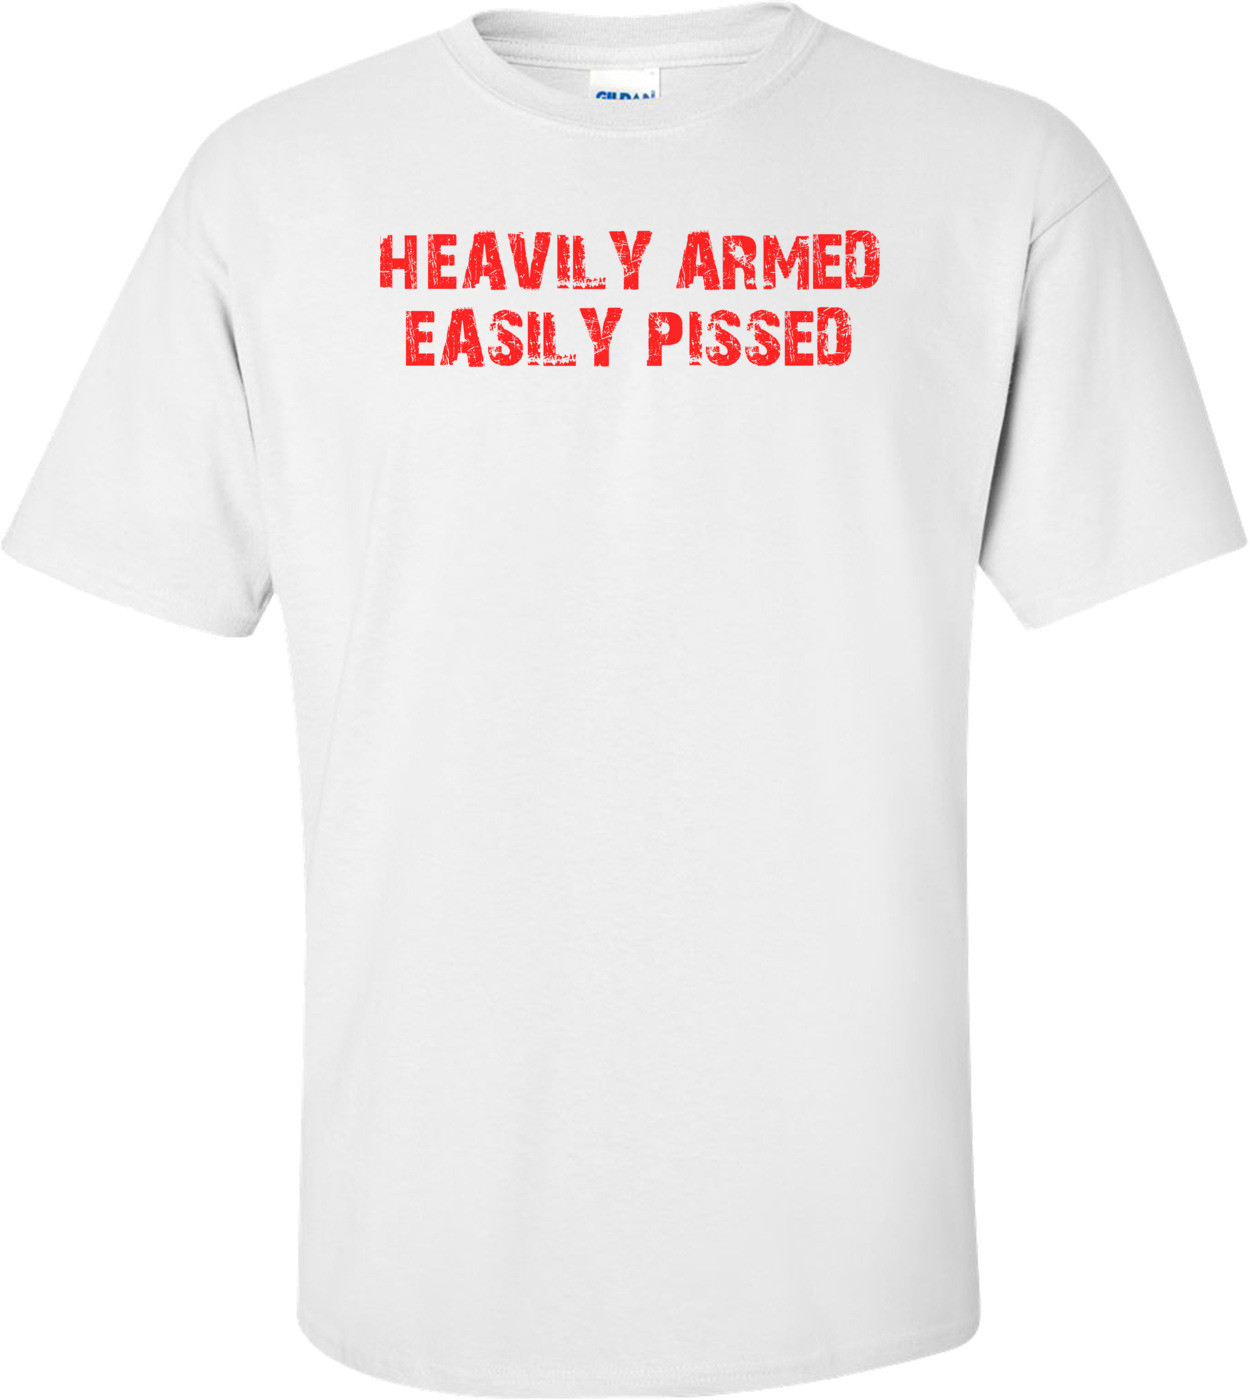 HEAVILY ARMED EASILY PISSED Shirt